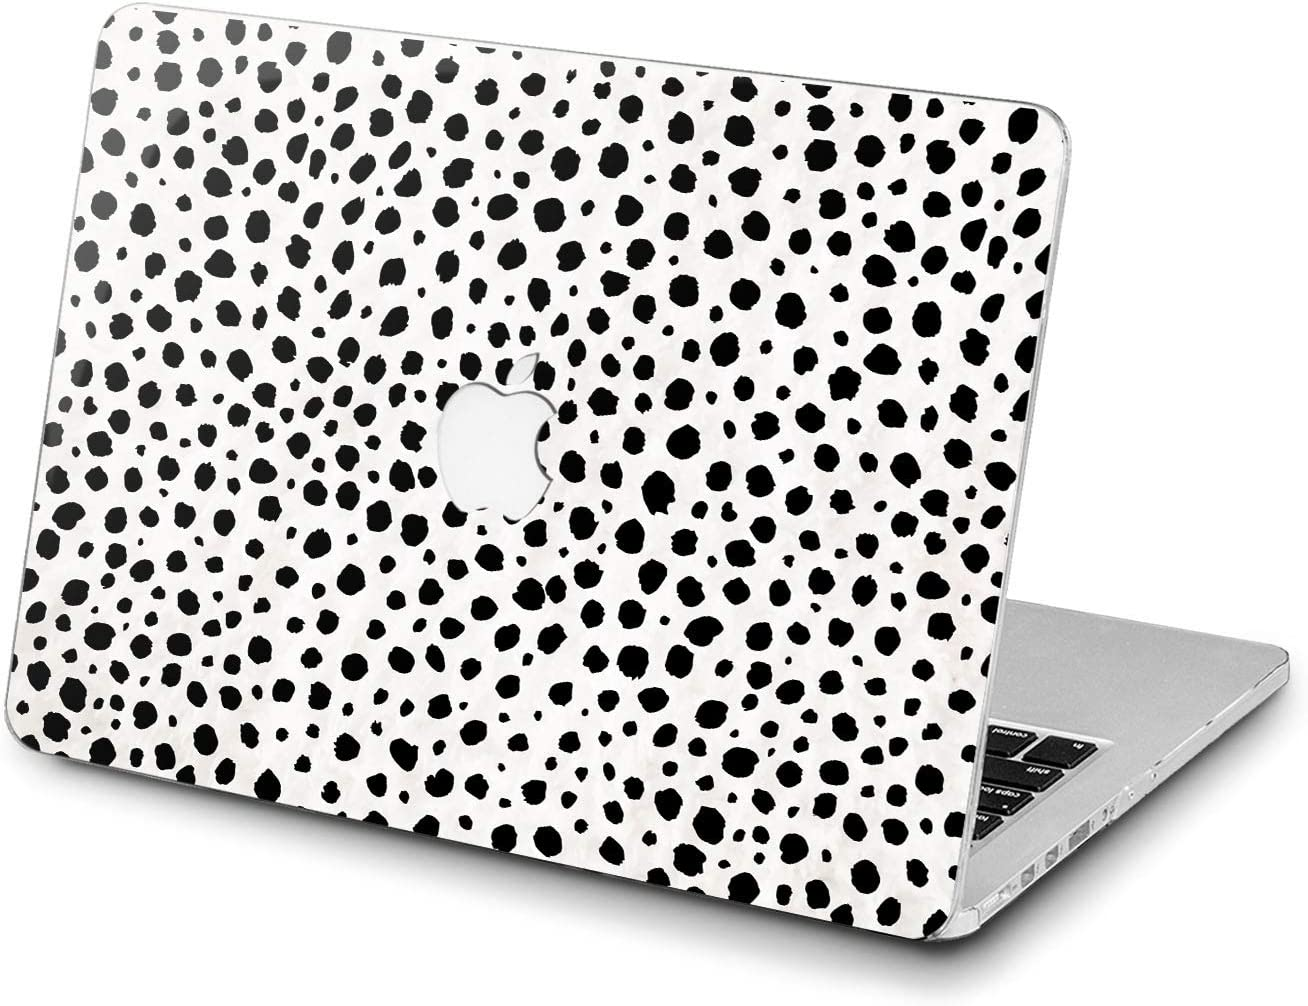 Lex Altern Hard Case for Apple MacBook Pro 15 Air 13 inch Mac Retina 12 11 2020 2019 2018 2017 2016 Print Design Plastic Fancy Women Protective Dot Abstract Shell Black Girl White Cow Cover Leopard